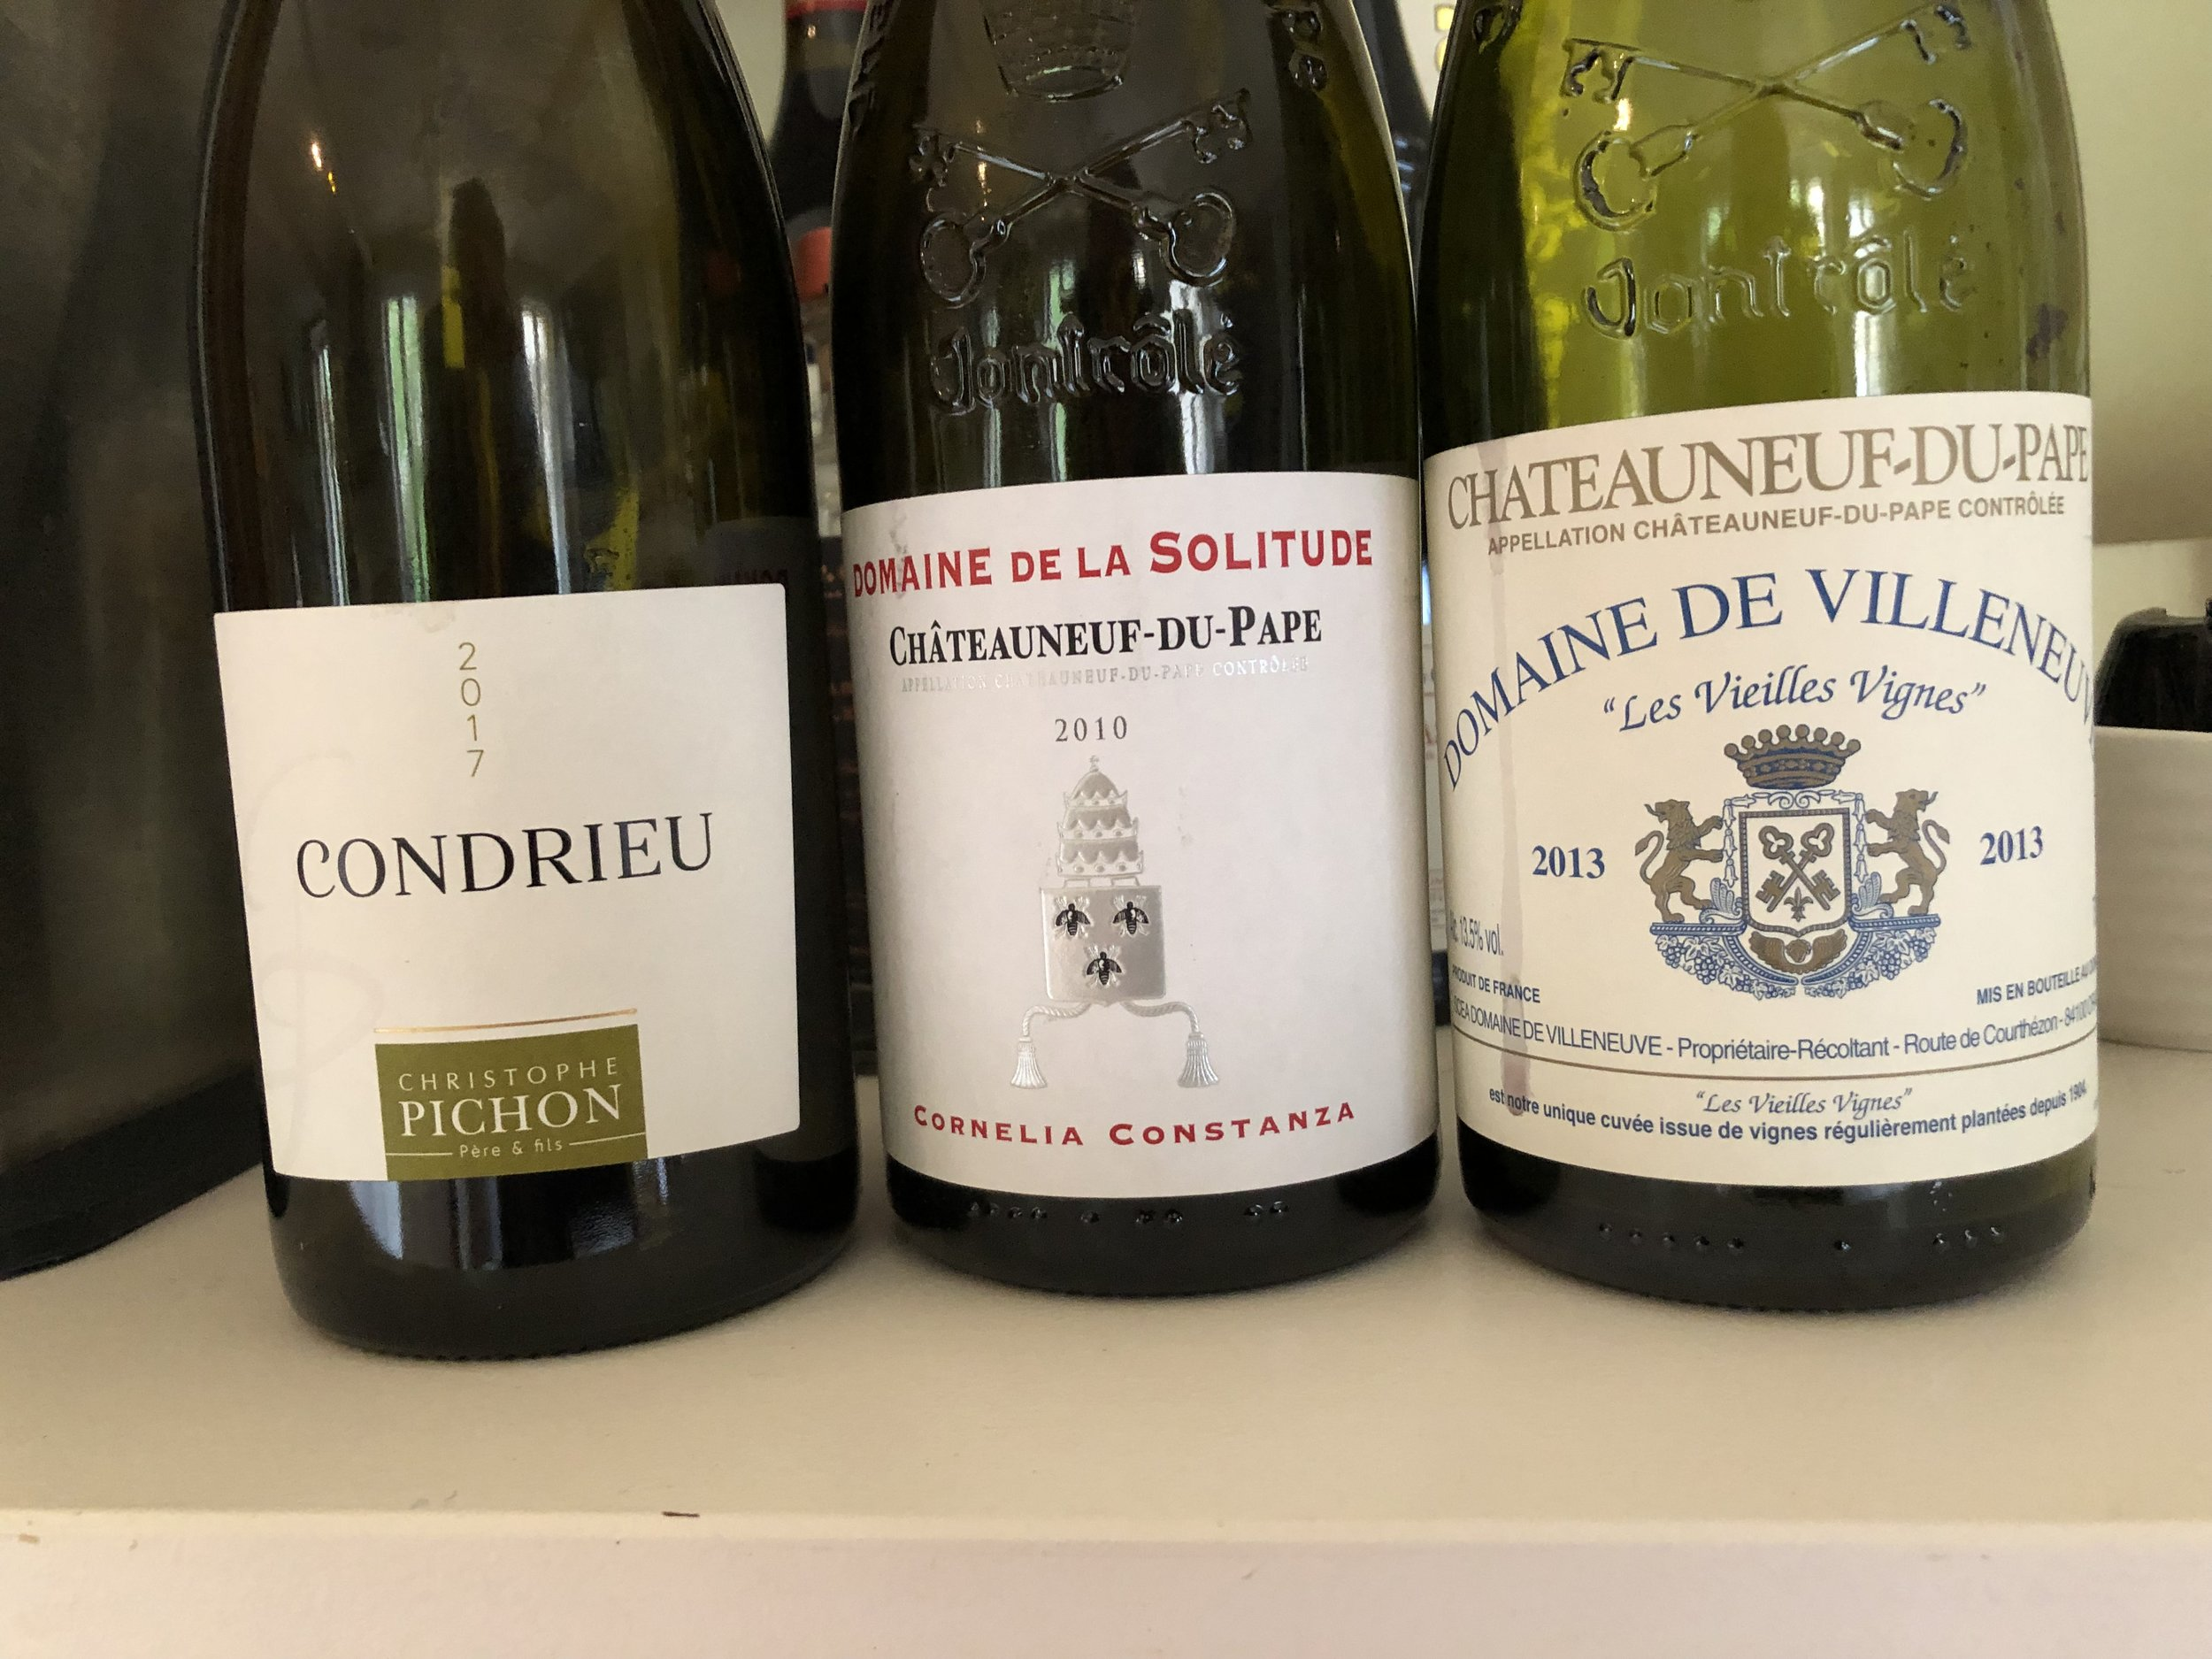 Easter Sunday wines at La Madelene